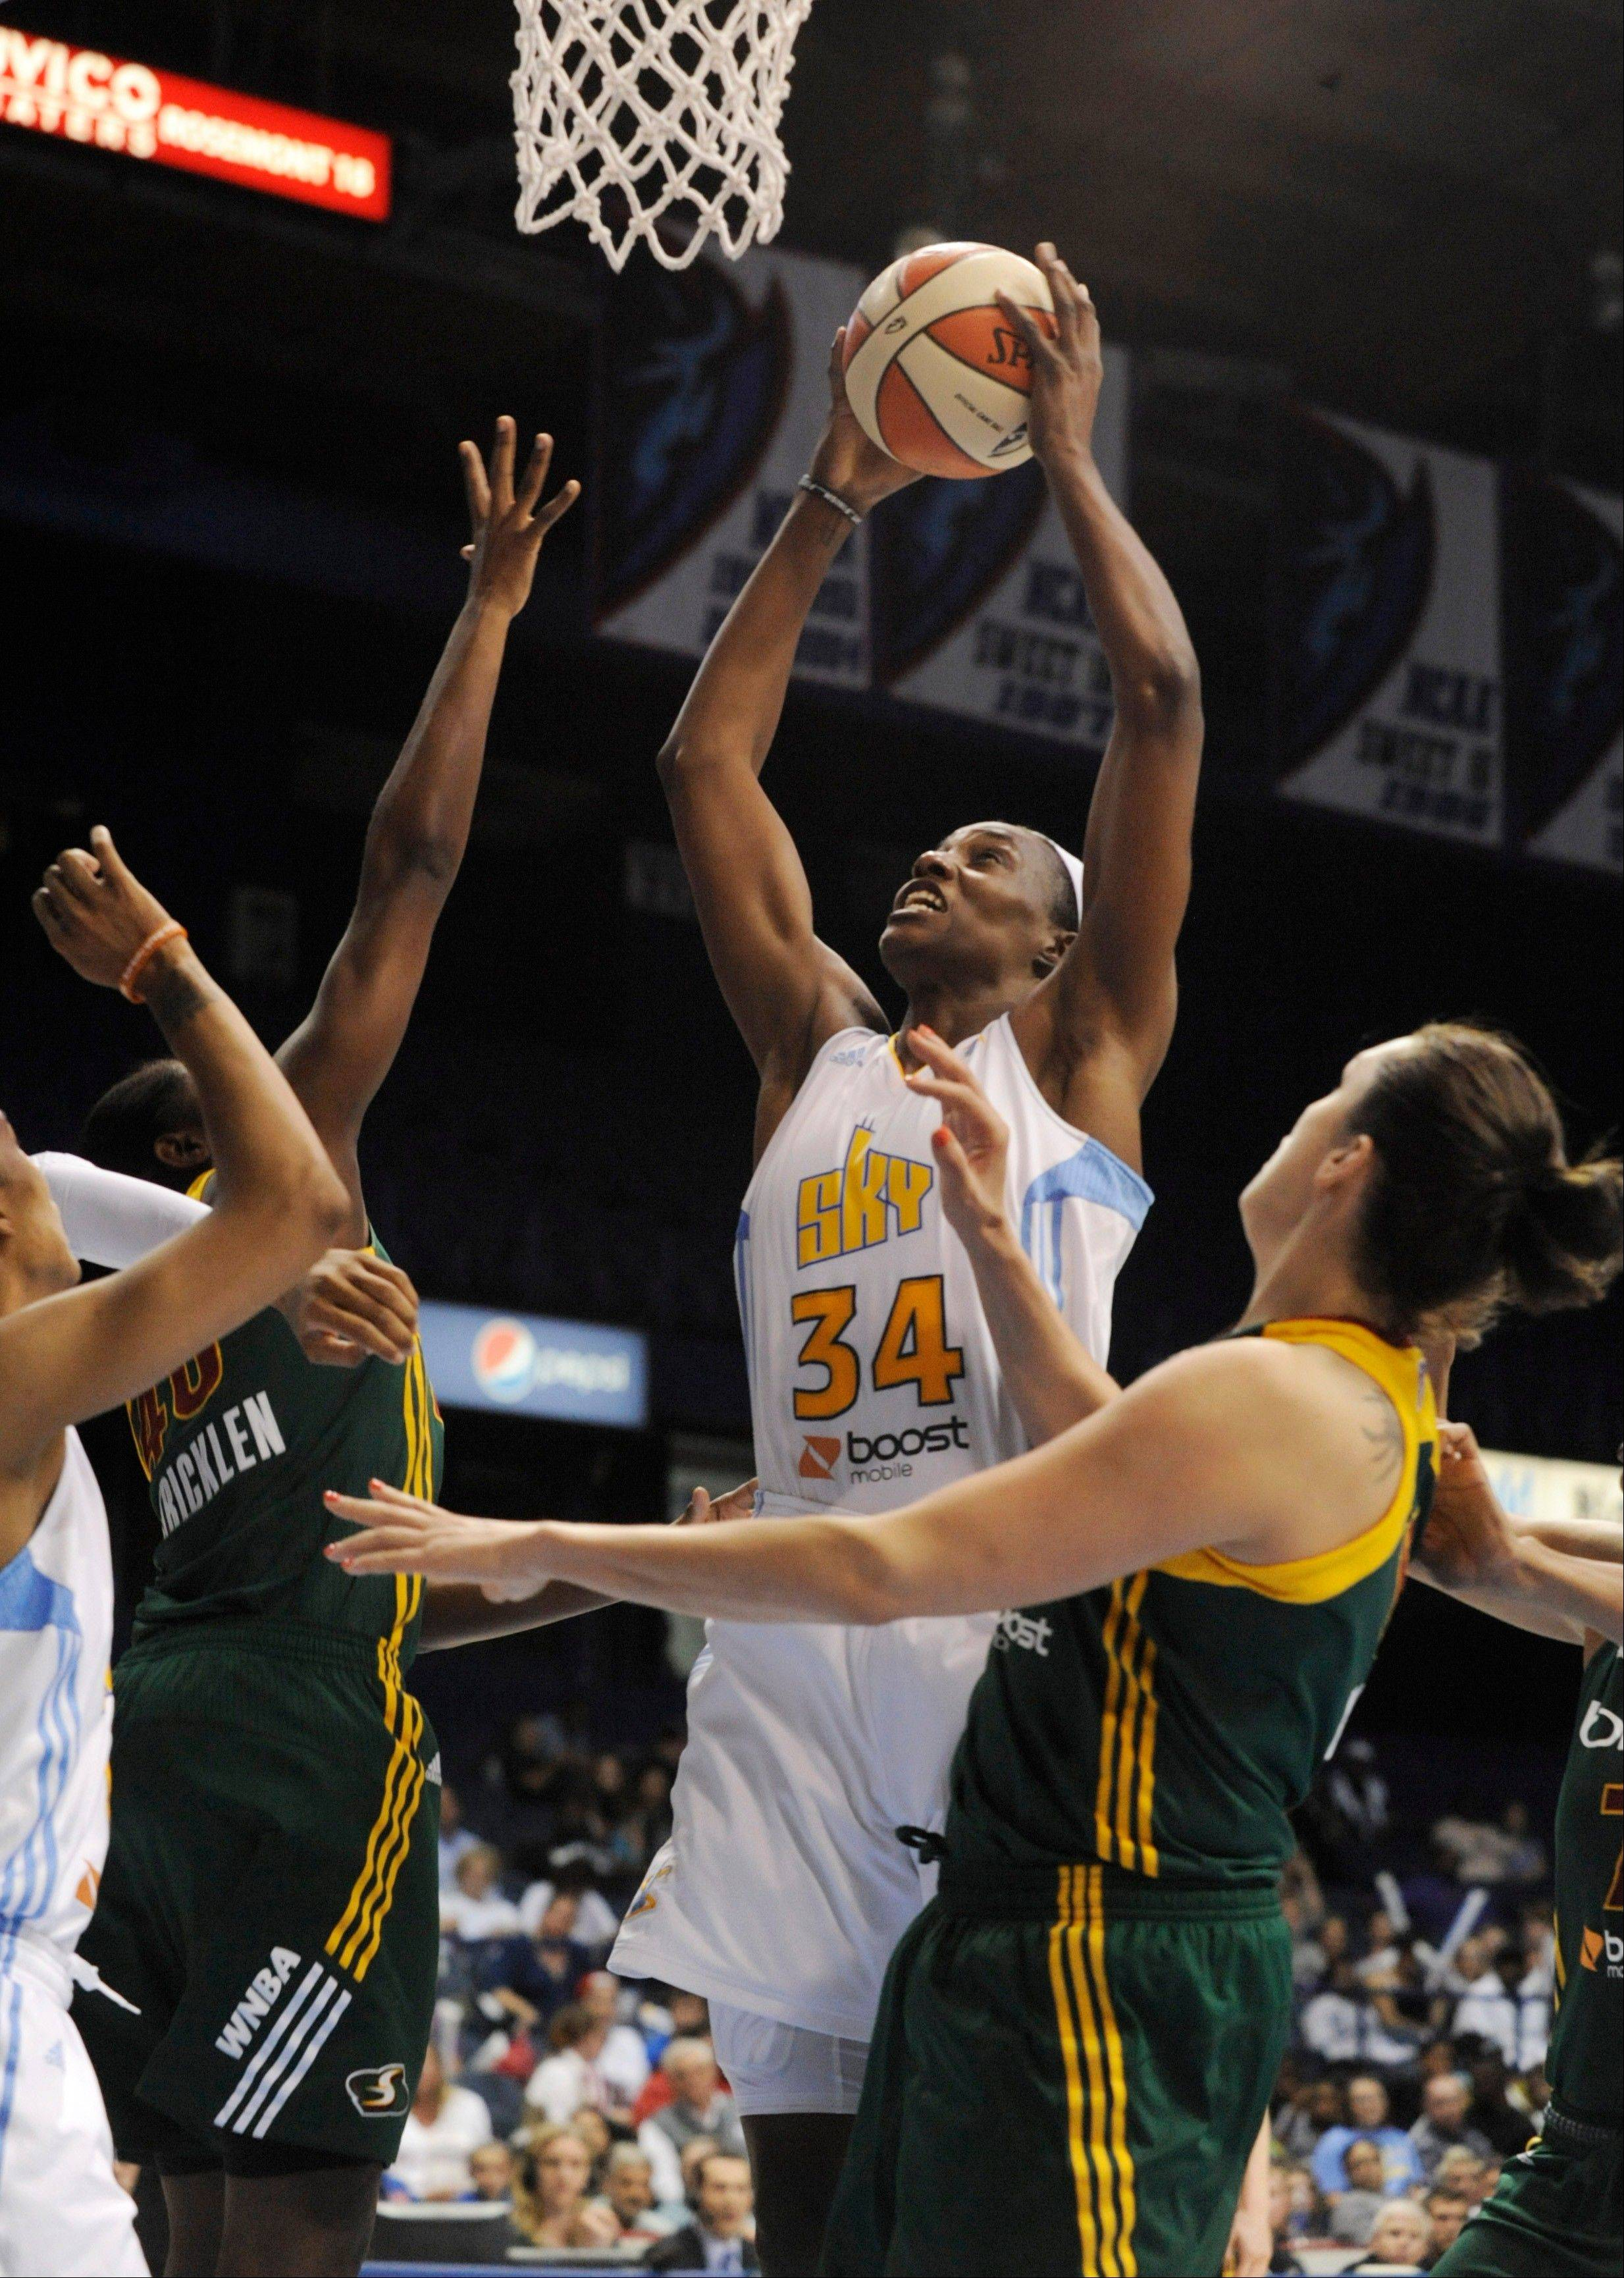 The Sky's Sylvia Fowles goes up for a shot against the Seattle Storm's Shekinna Stricklen, left, and Ewelina Kobryn right, Wednesday during the fourth quarter at Allstate Arena. Chicago won 74-58.